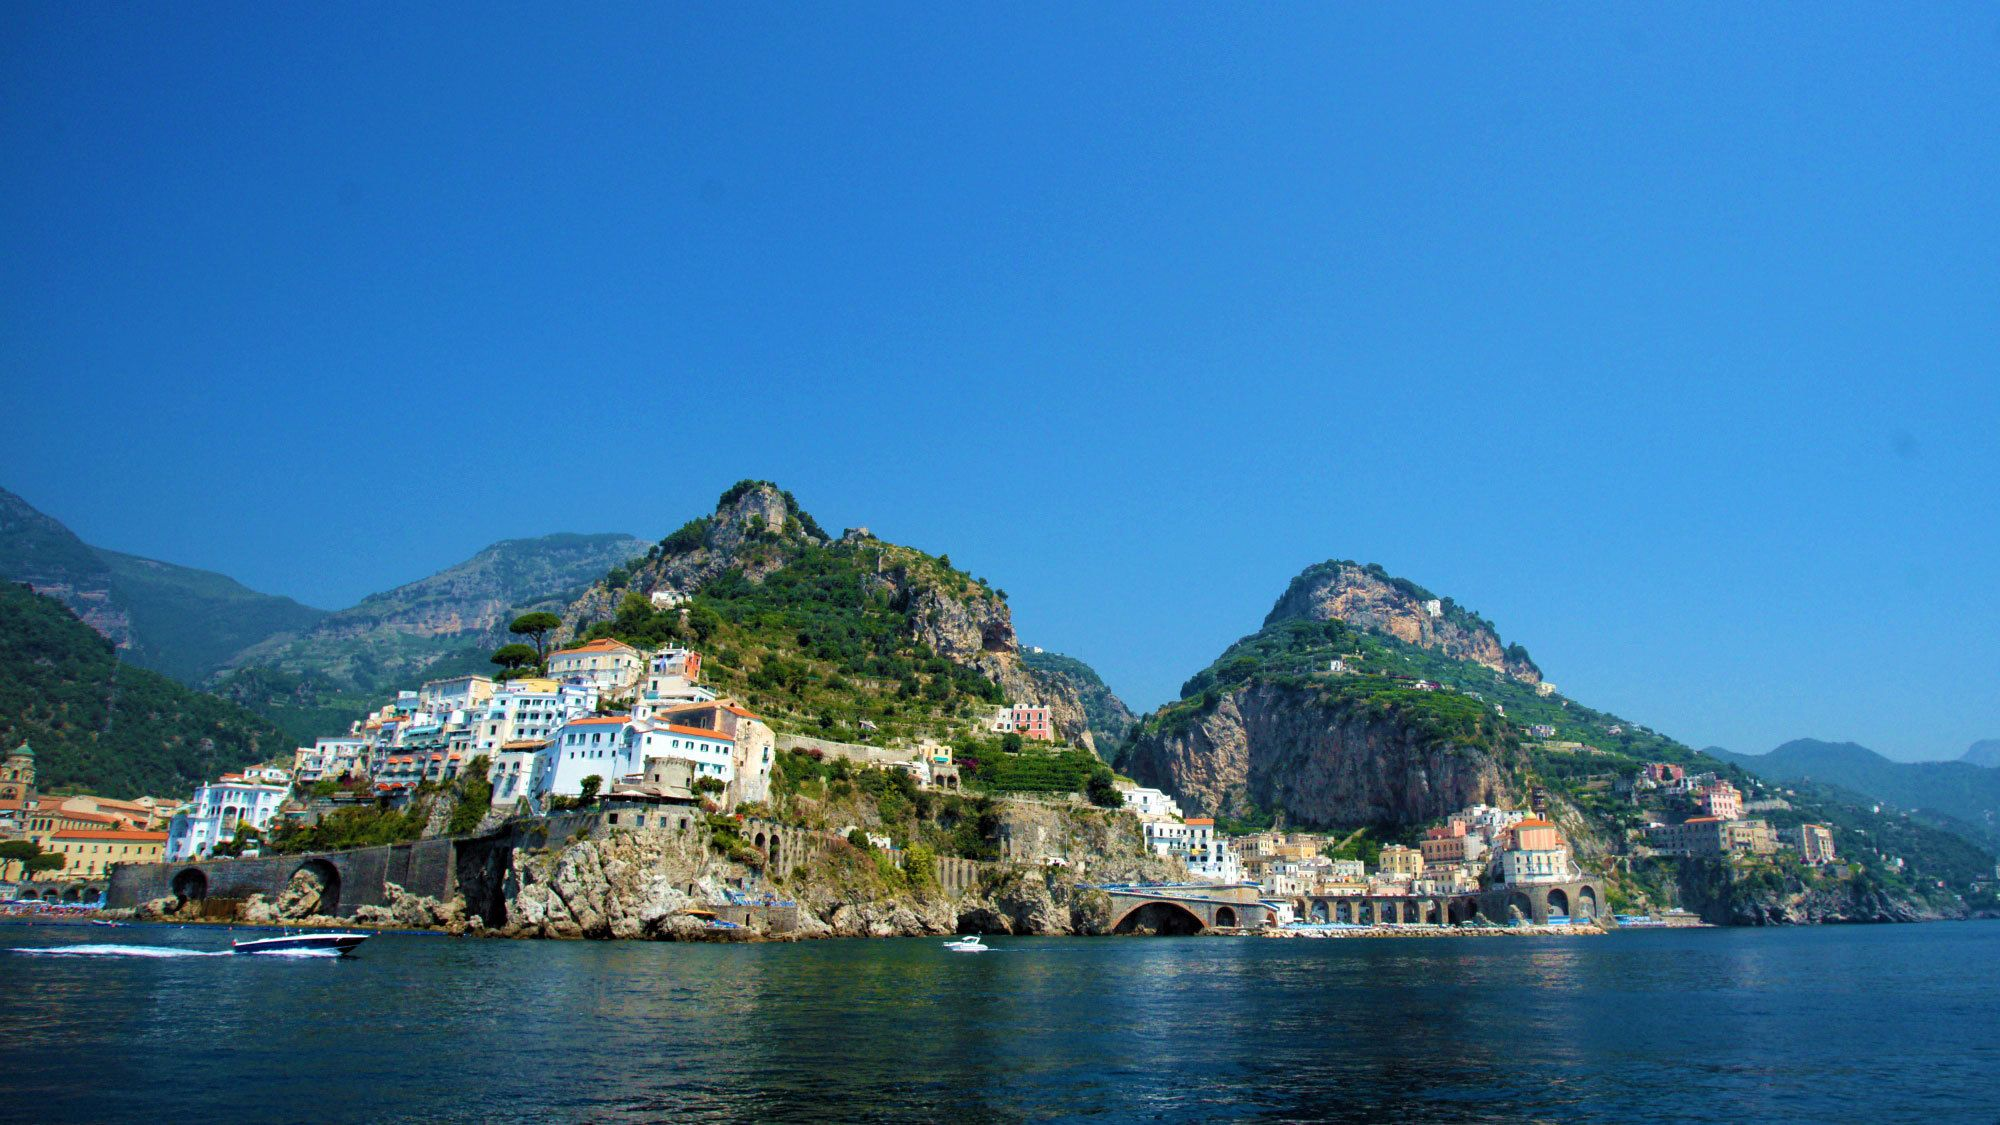 Town along the rocky Amalfi Coast in Italy